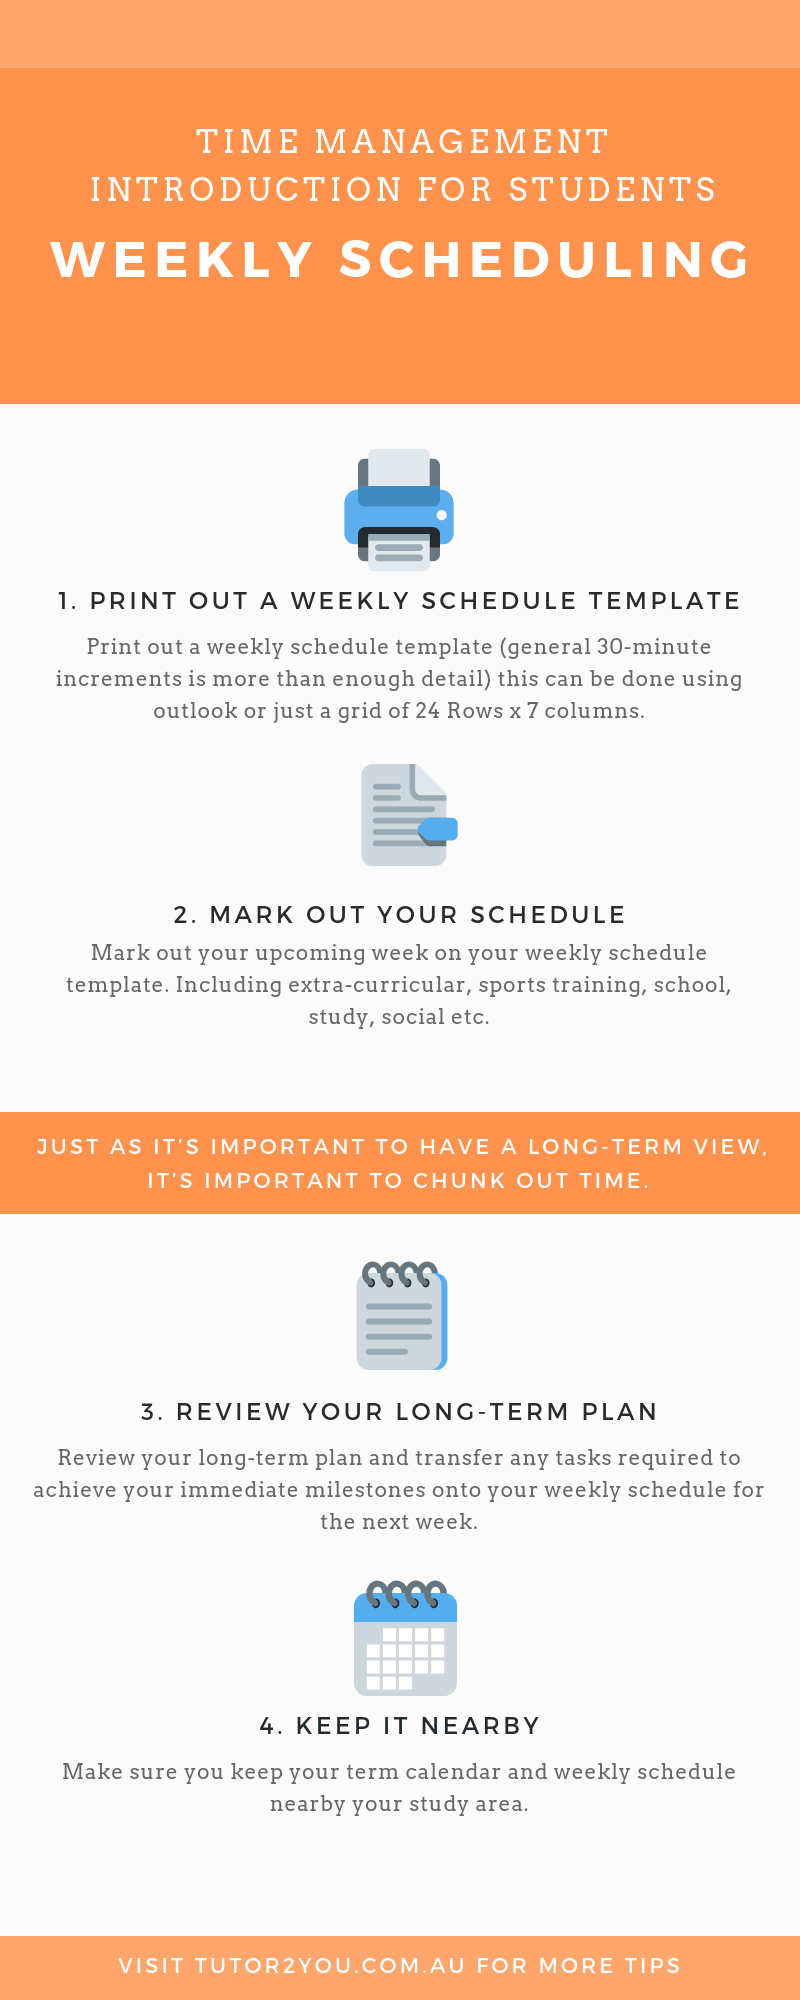 time management for students - weekly scheduling